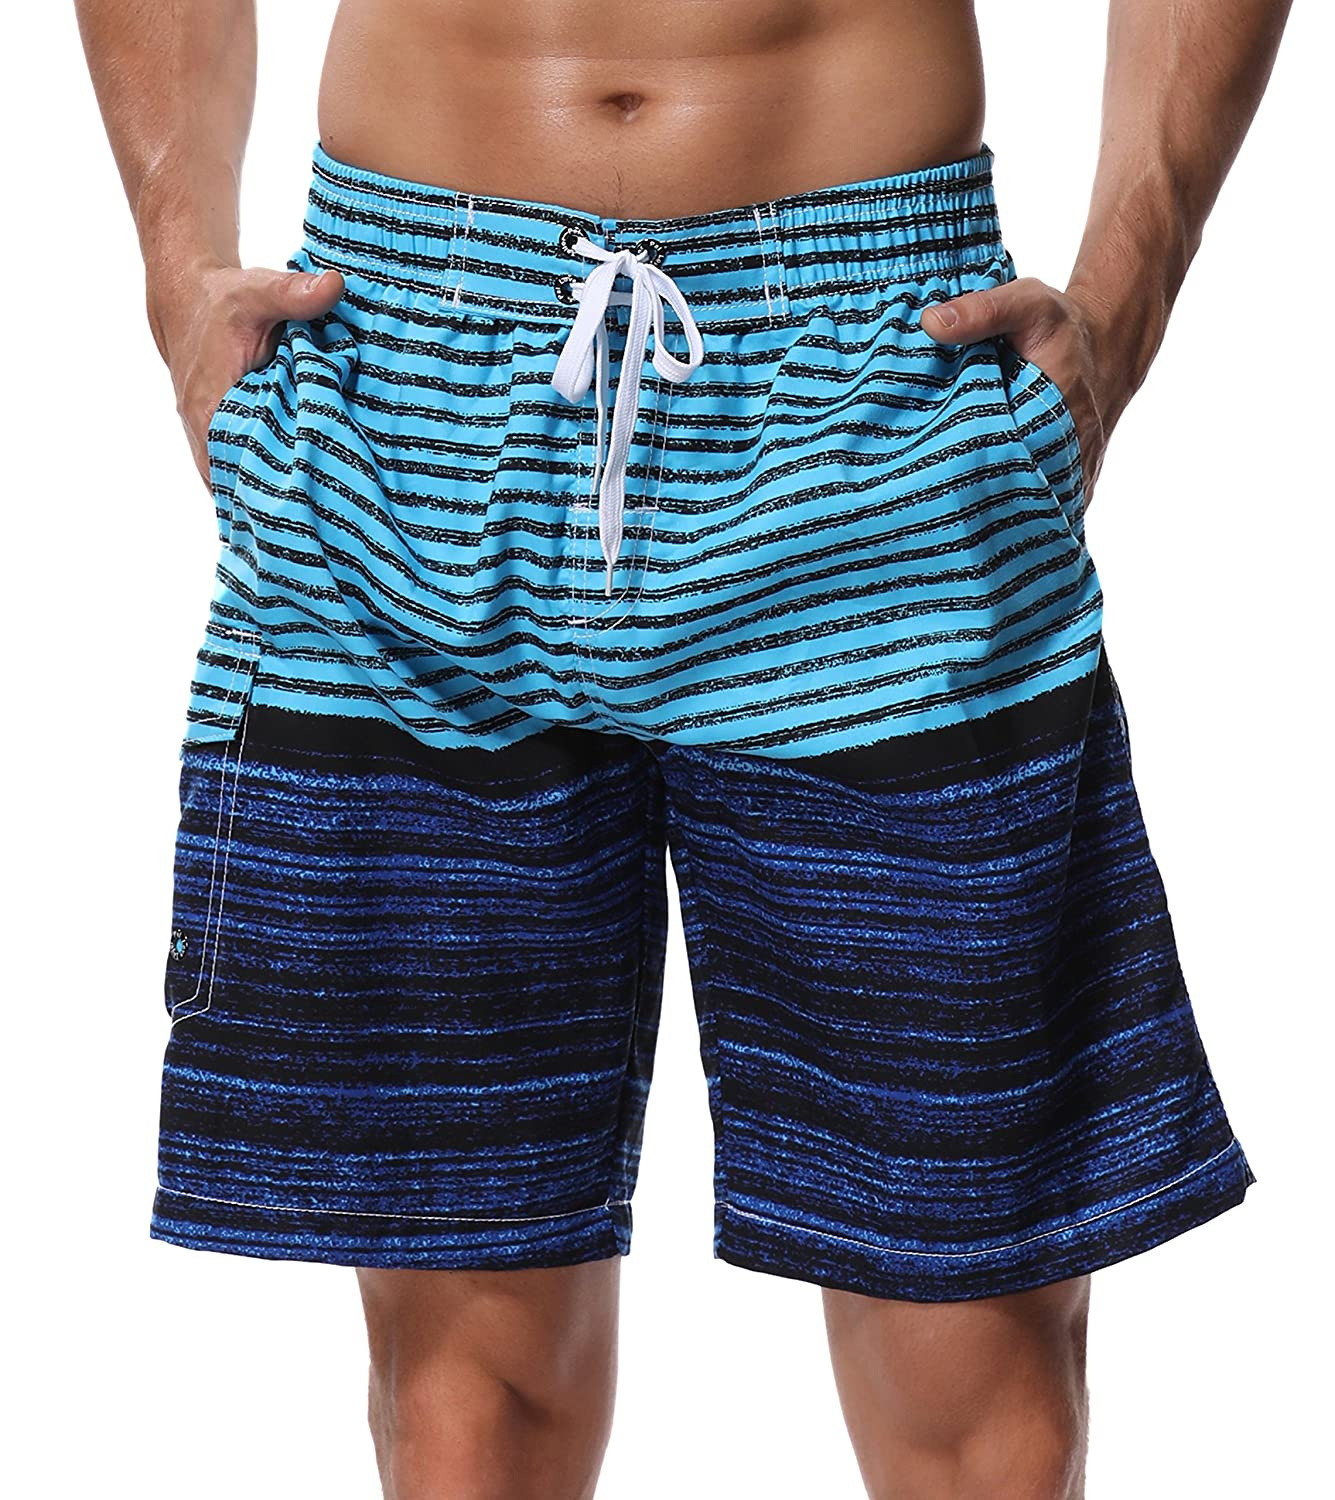 TALLA 34. SHEKINI Men New Swim Shorts Swimwear Beach Shorts Bermuda Shorts Summer Beach Sport Shorts Tallas